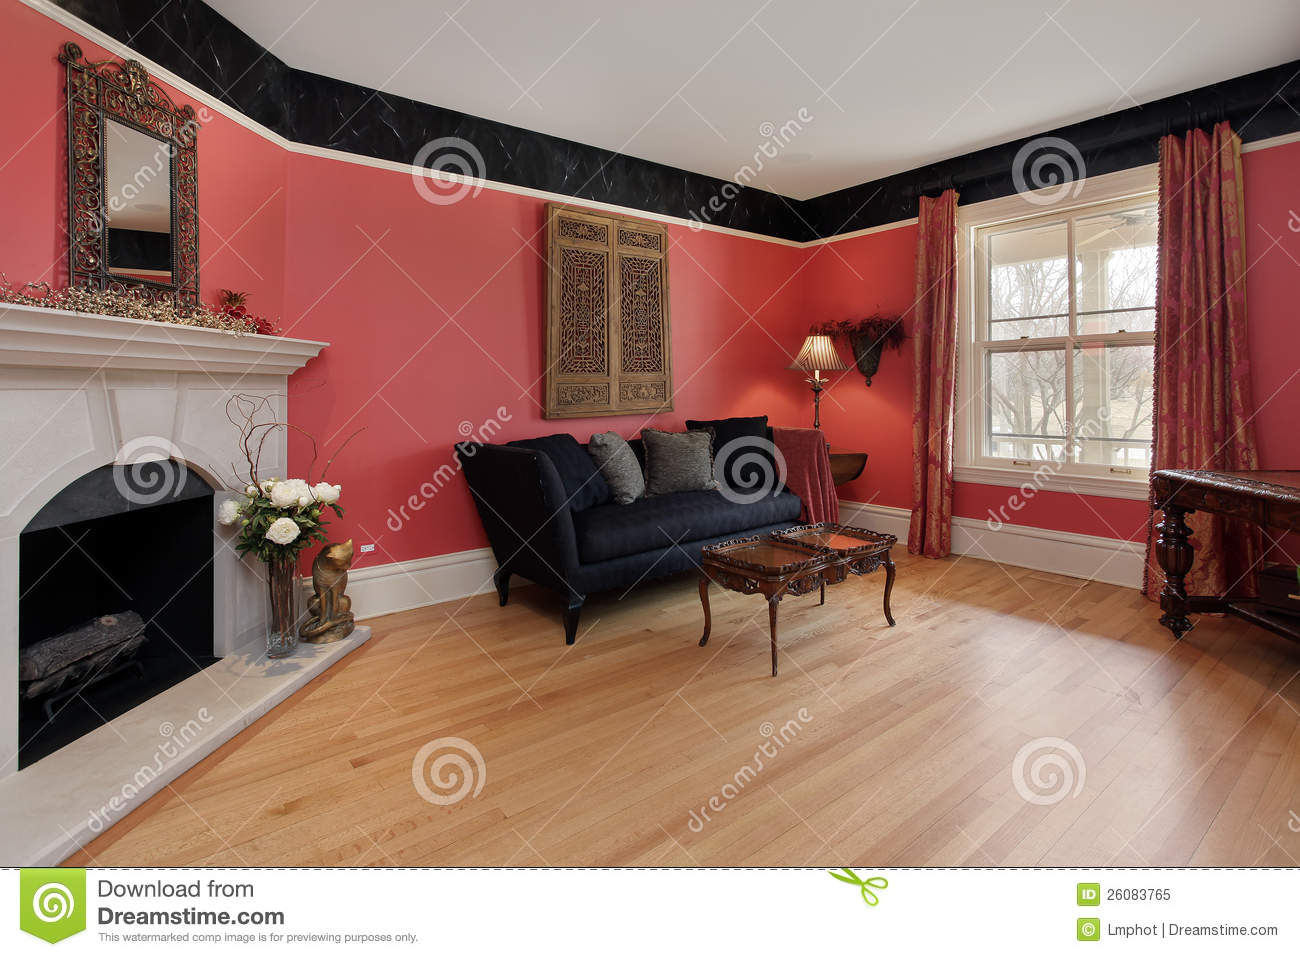 Living room with red walls stock image image of hardwood for Red walls in living room